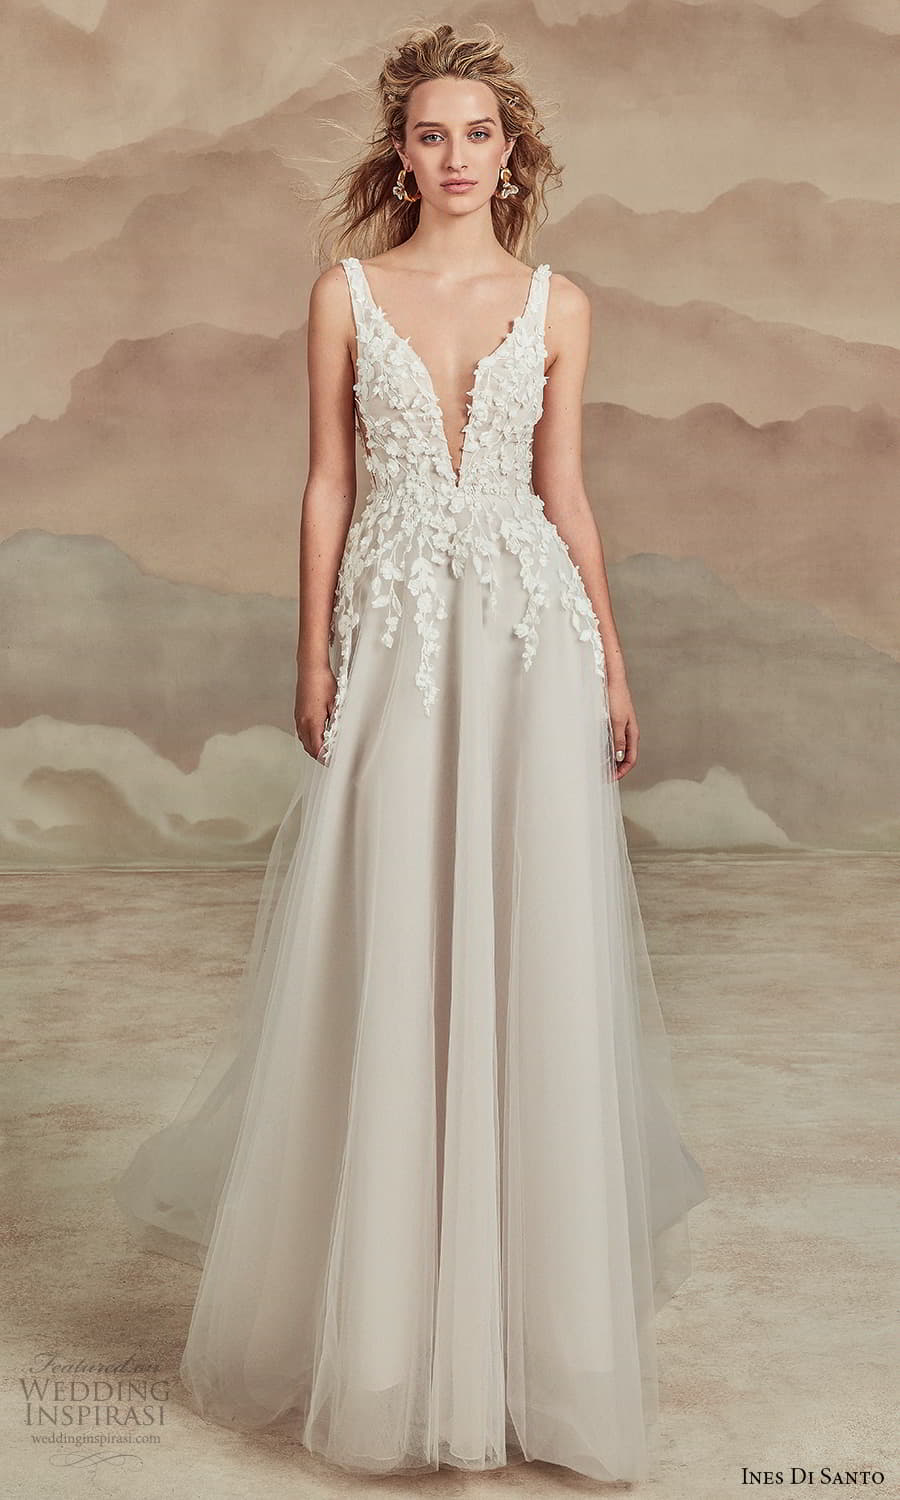 ines di santo spring 2022 bridal sleeveless straps plunging v neckline embellished bodice a line ball gown wedding dress chapel train (20) mv